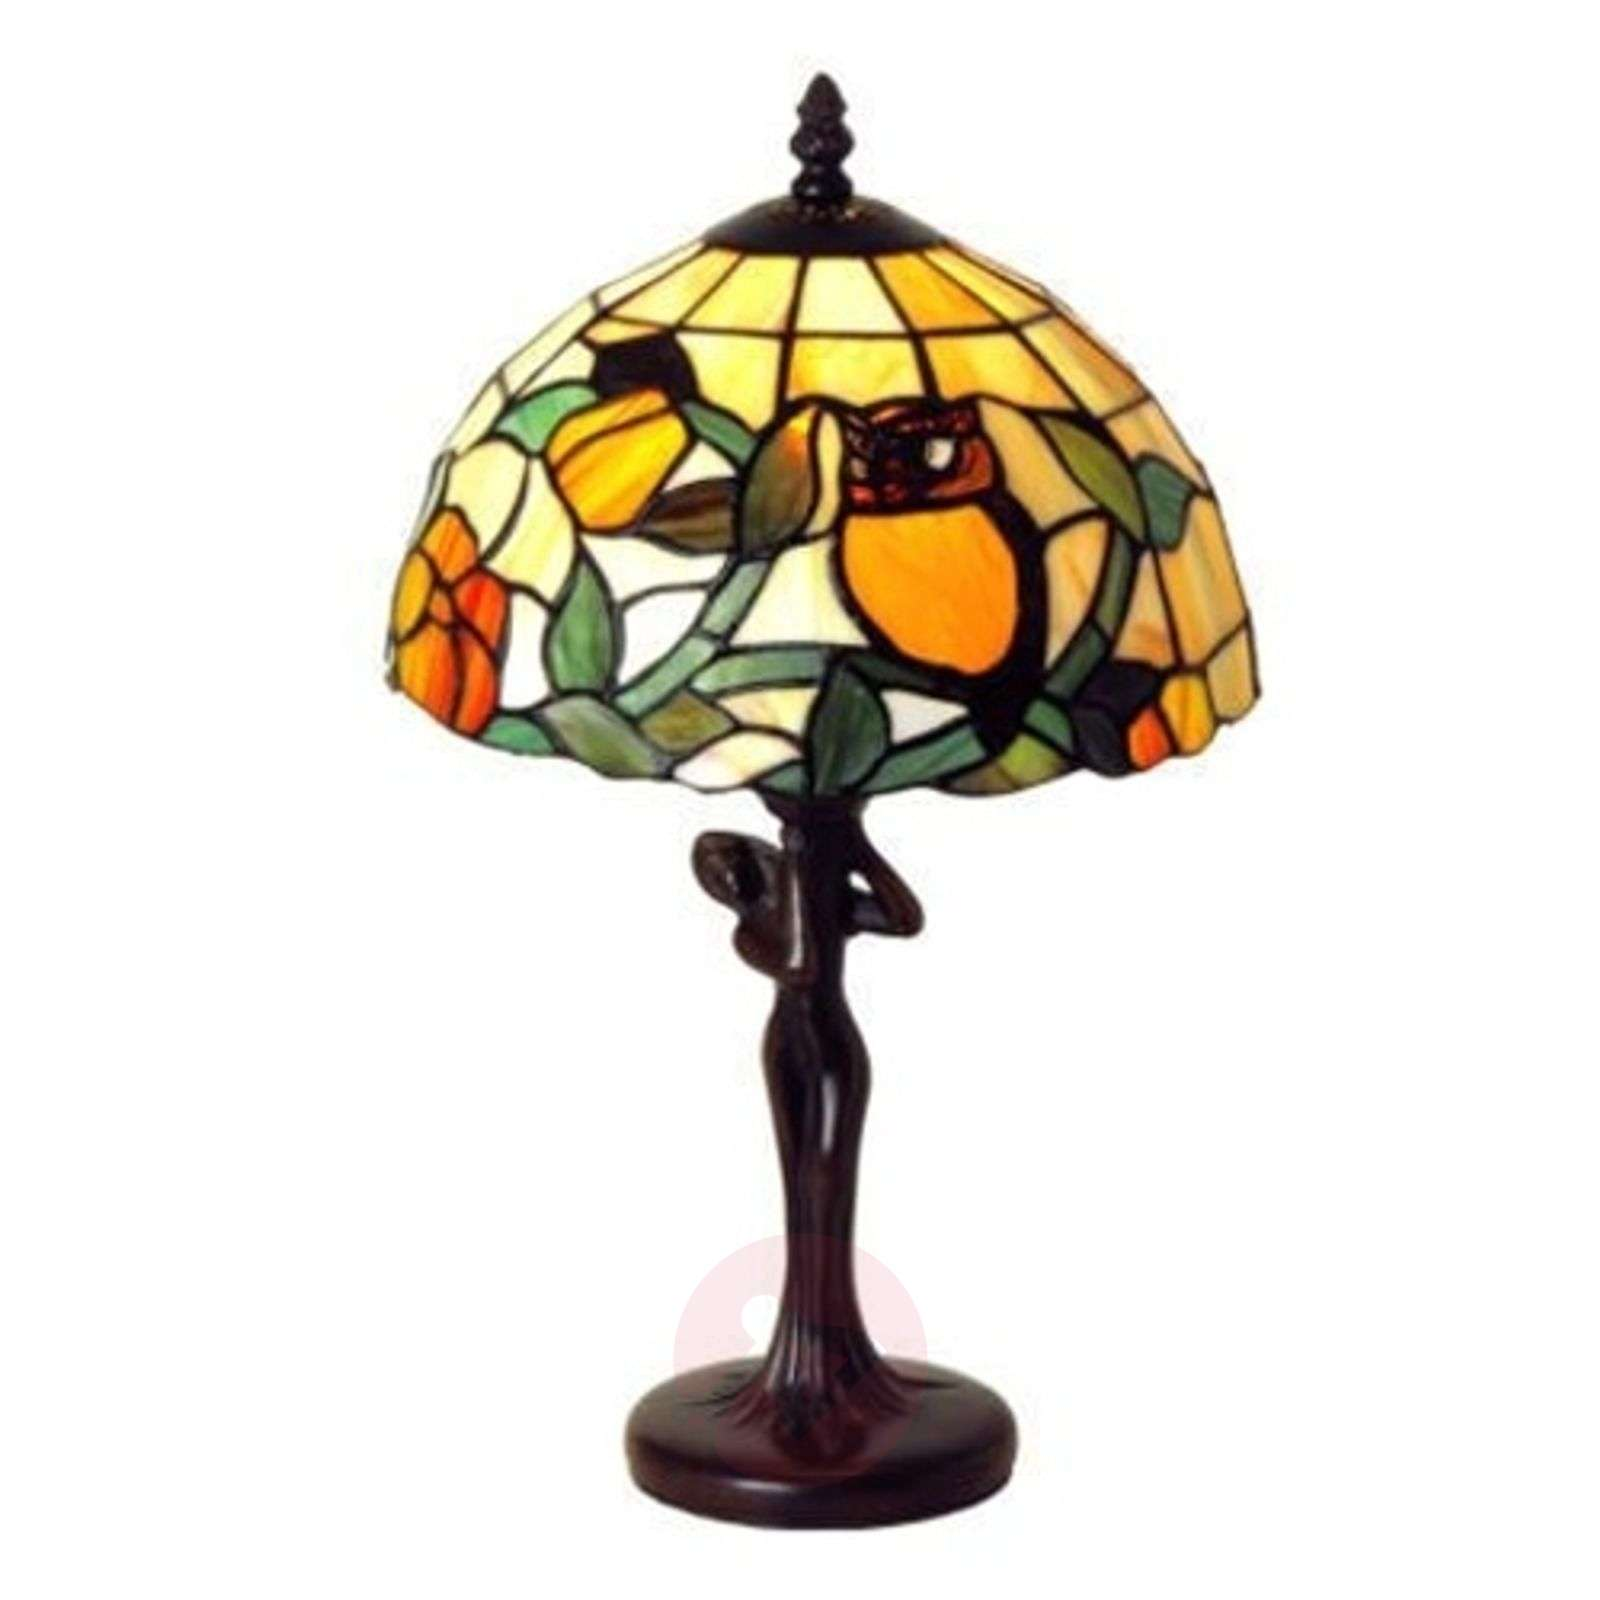 LIEKE table lamp in the Tiffany style-1032199-01